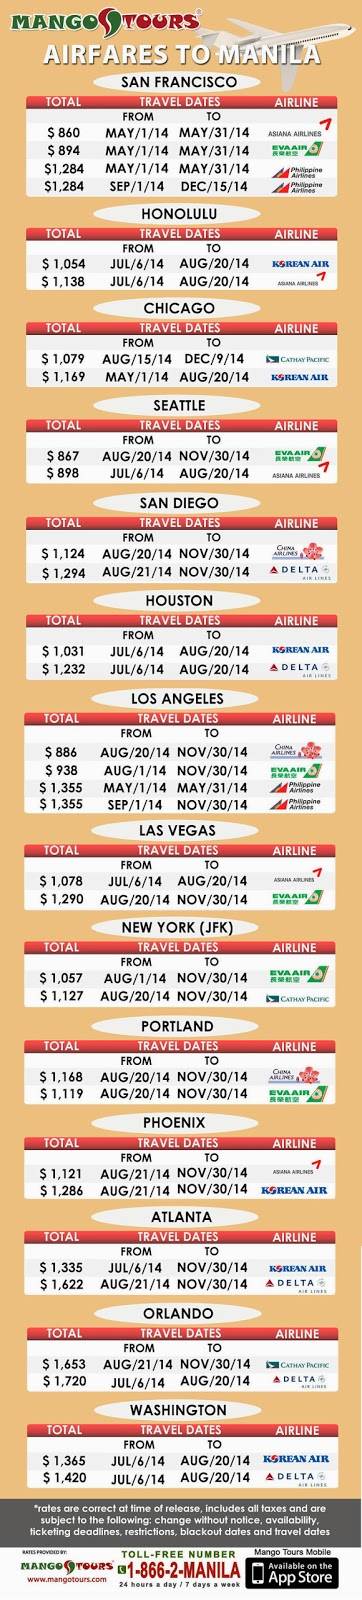 Current airfares to Manila (as of May 3, 2014)